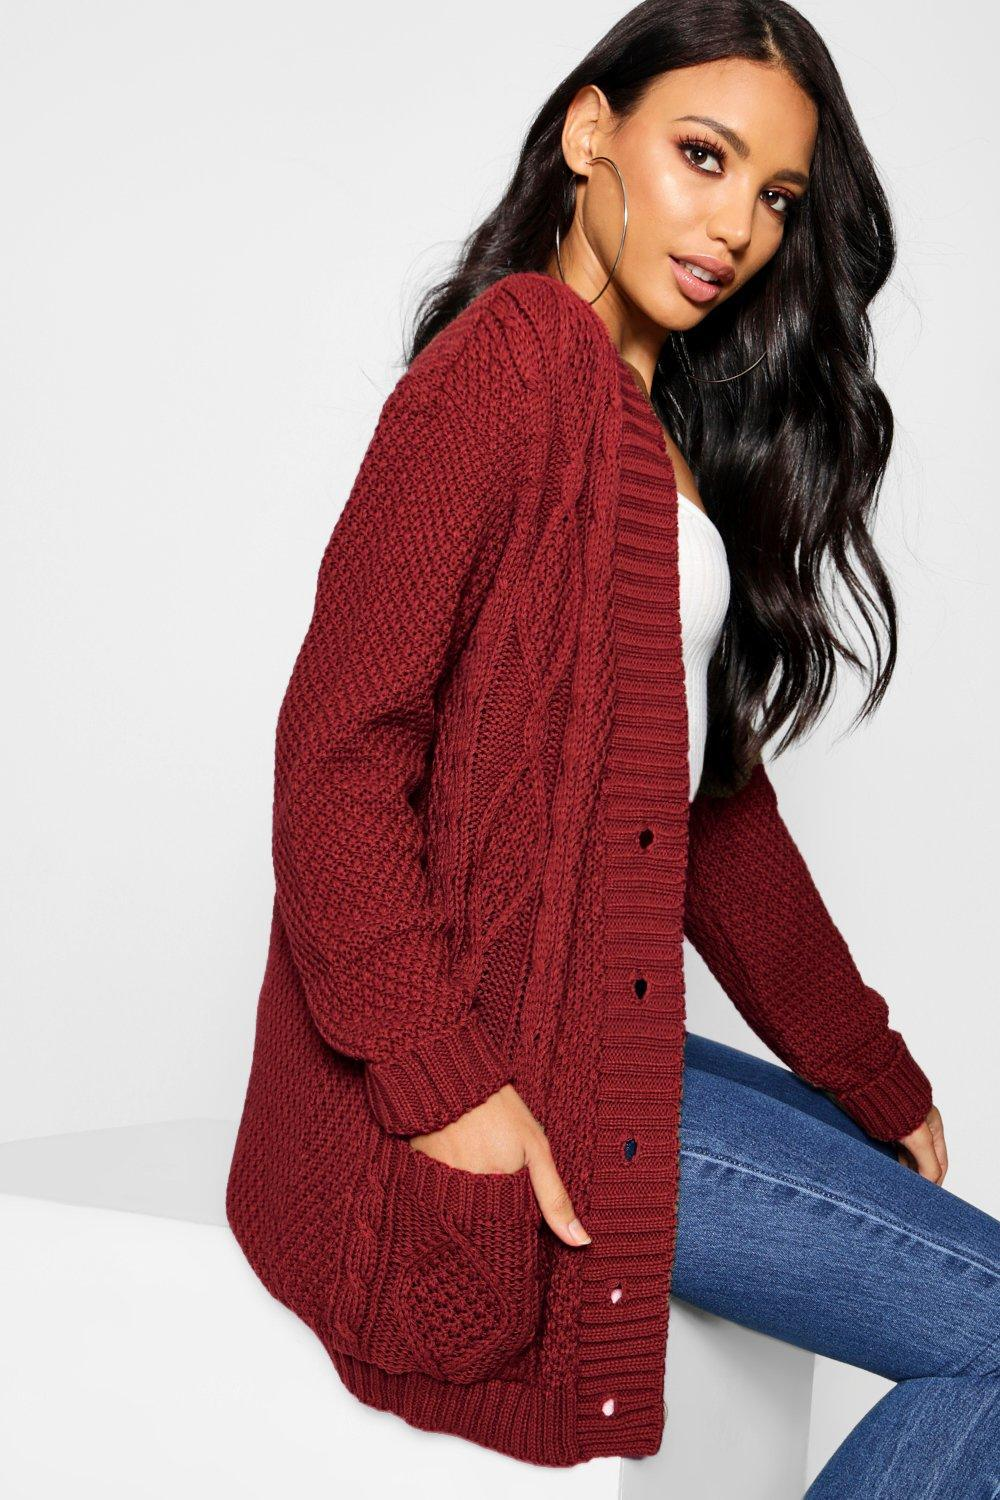 Boohoo Cable Boyfriend Button Up Cardigan in Red - Lyst 9faf36ae5